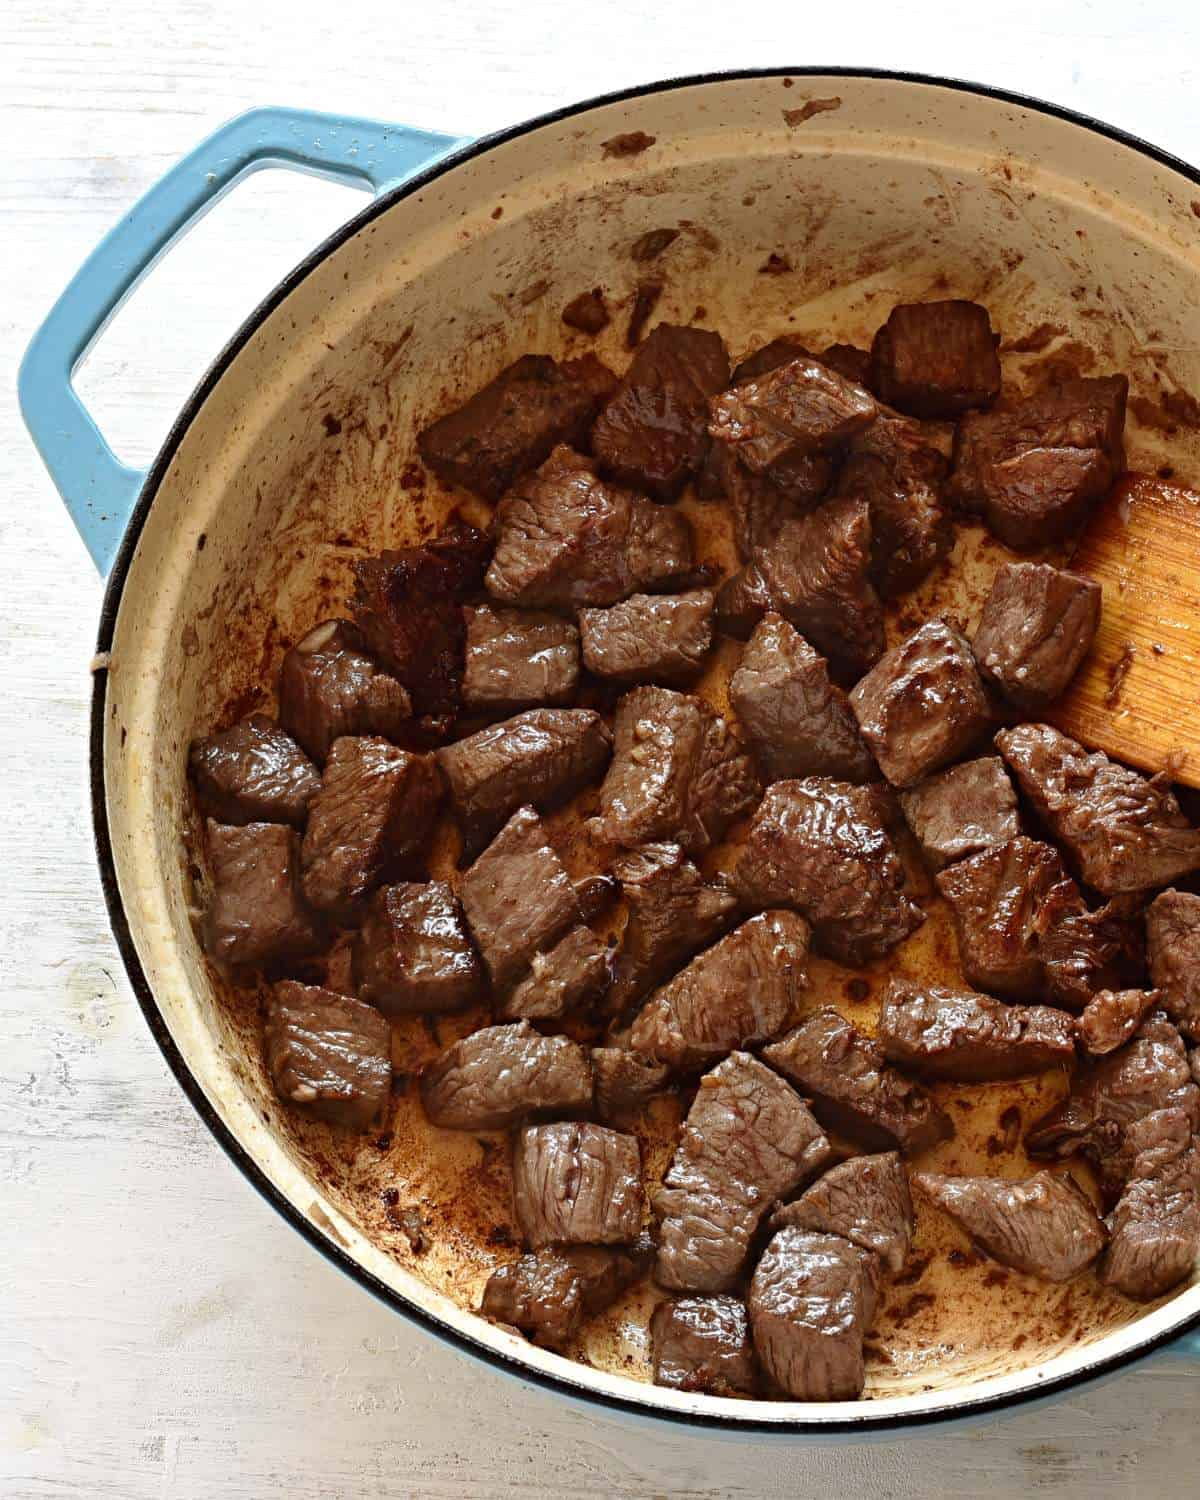 Searing beef cubes in a pan.